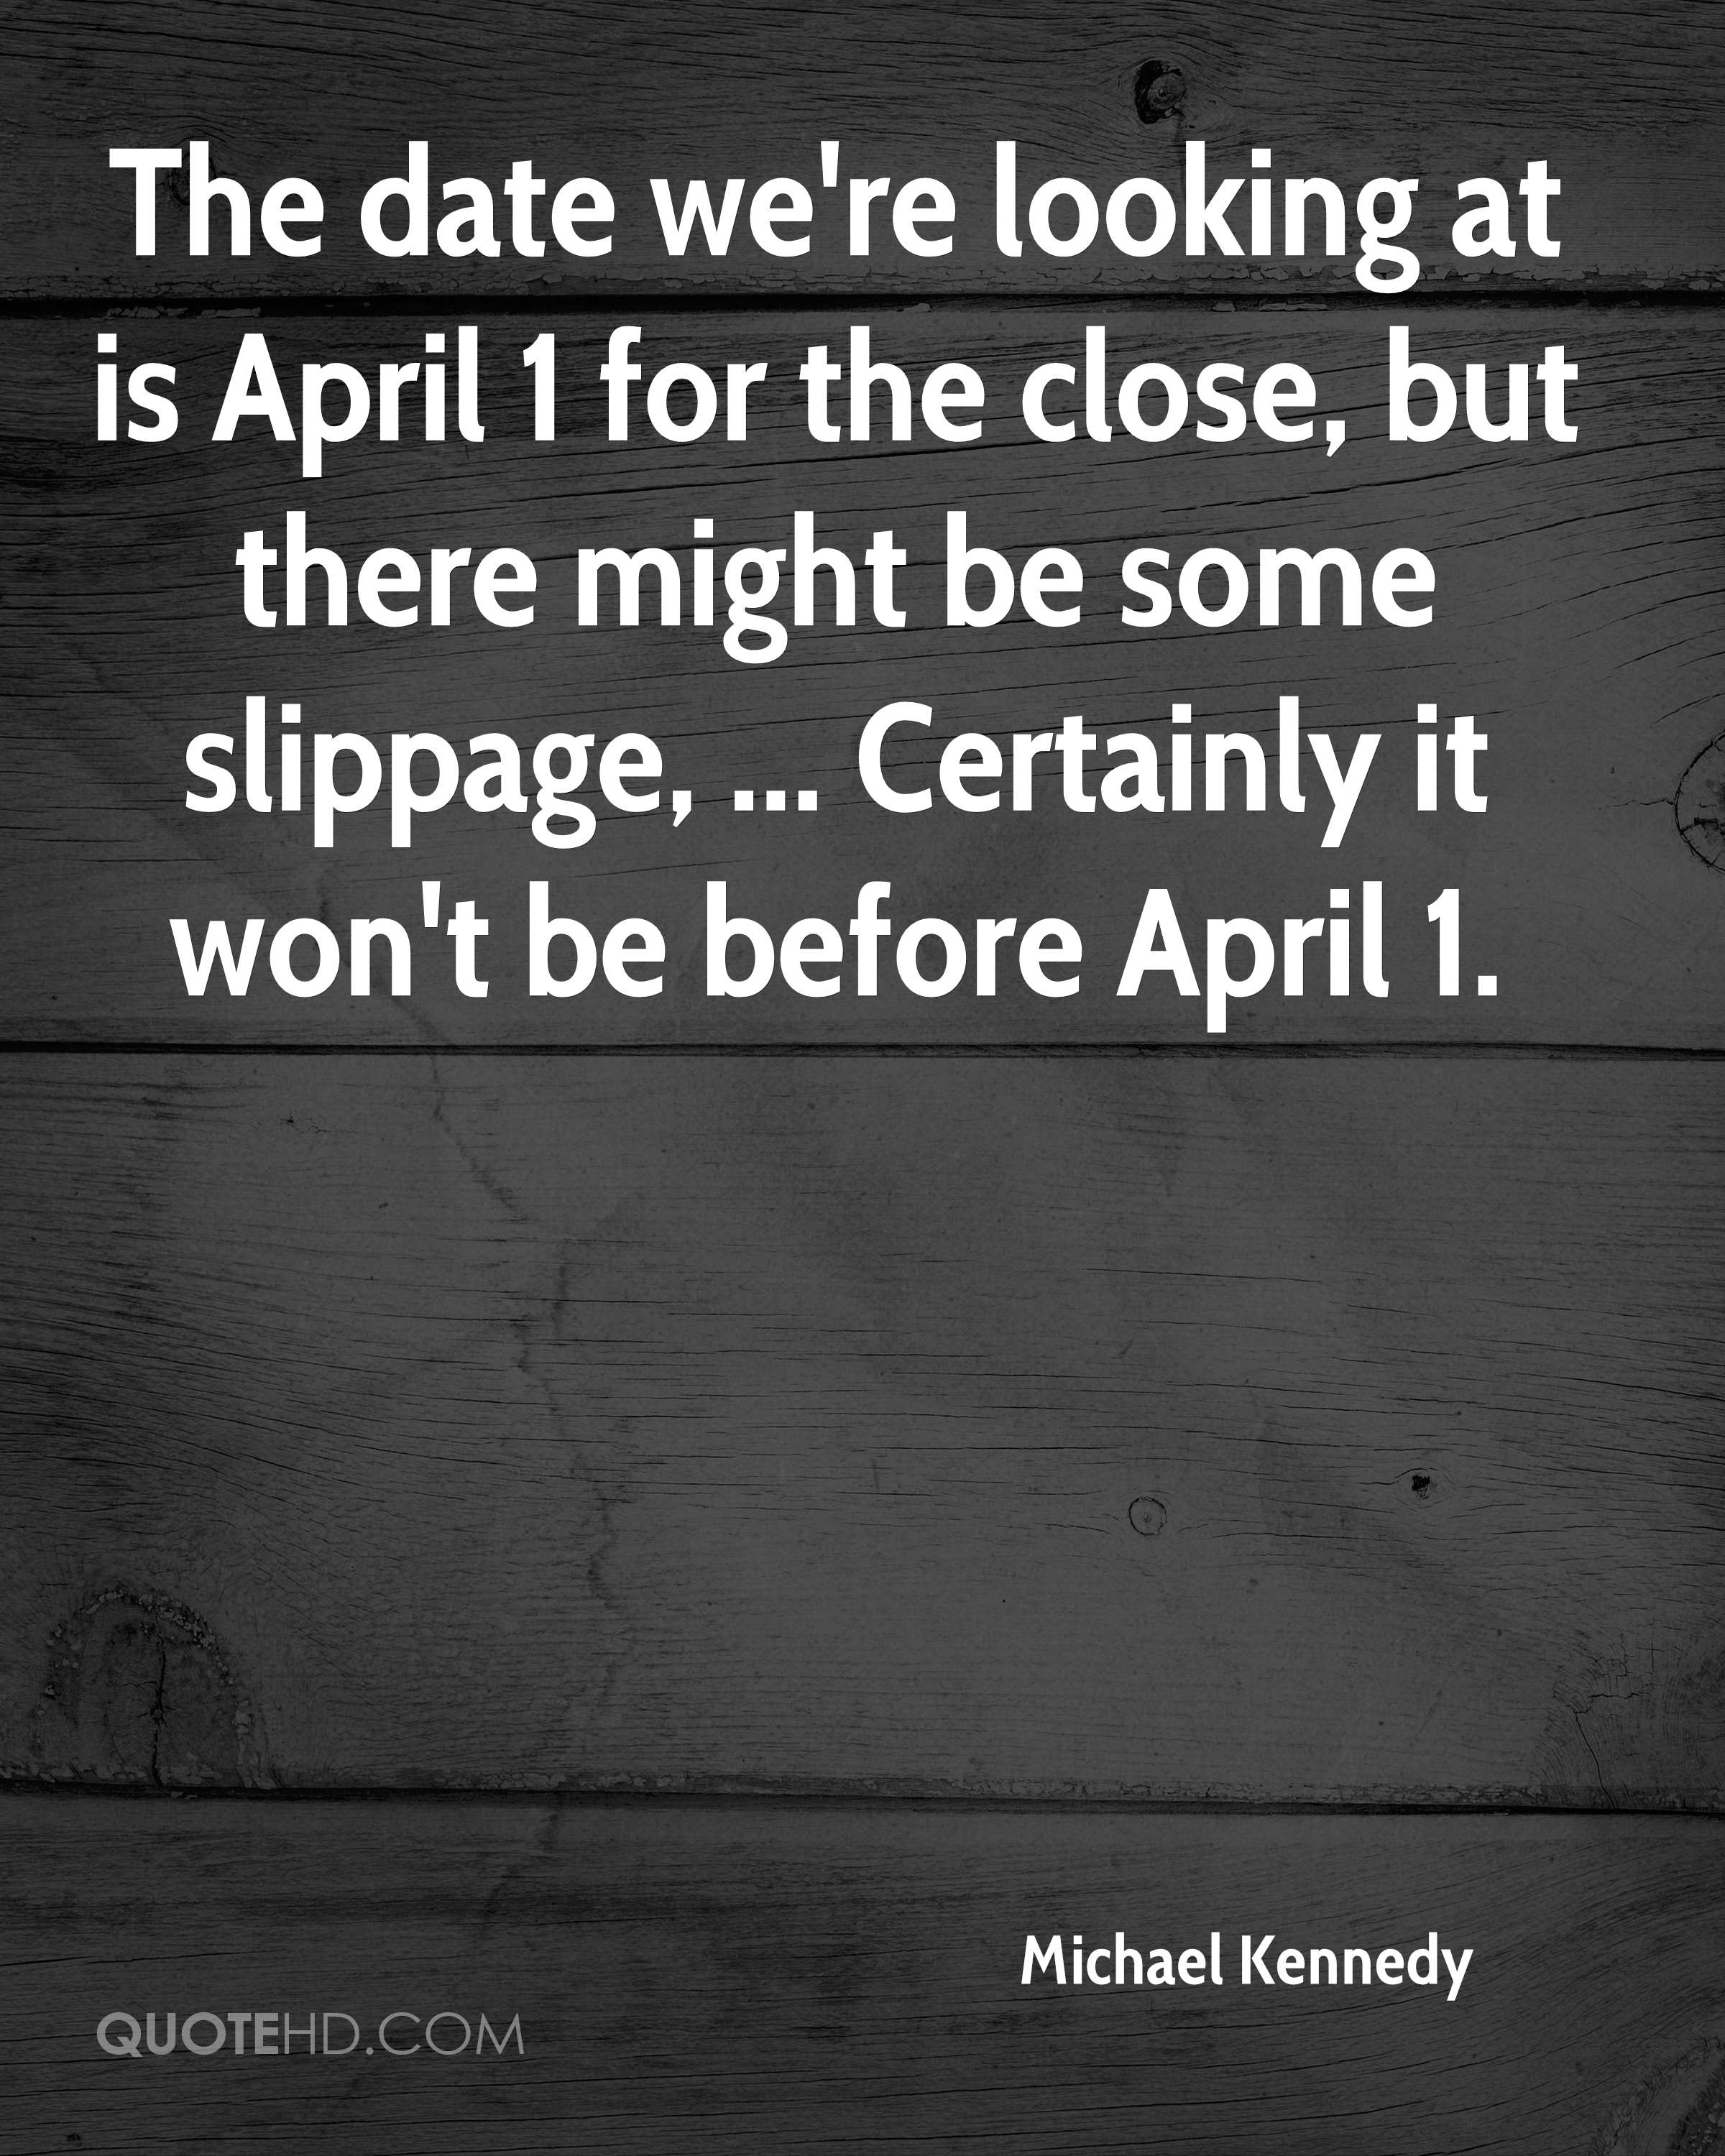 The date we're looking at is April 1 for the close, but there might be some slippage, ... Certainly it won't be before April 1.